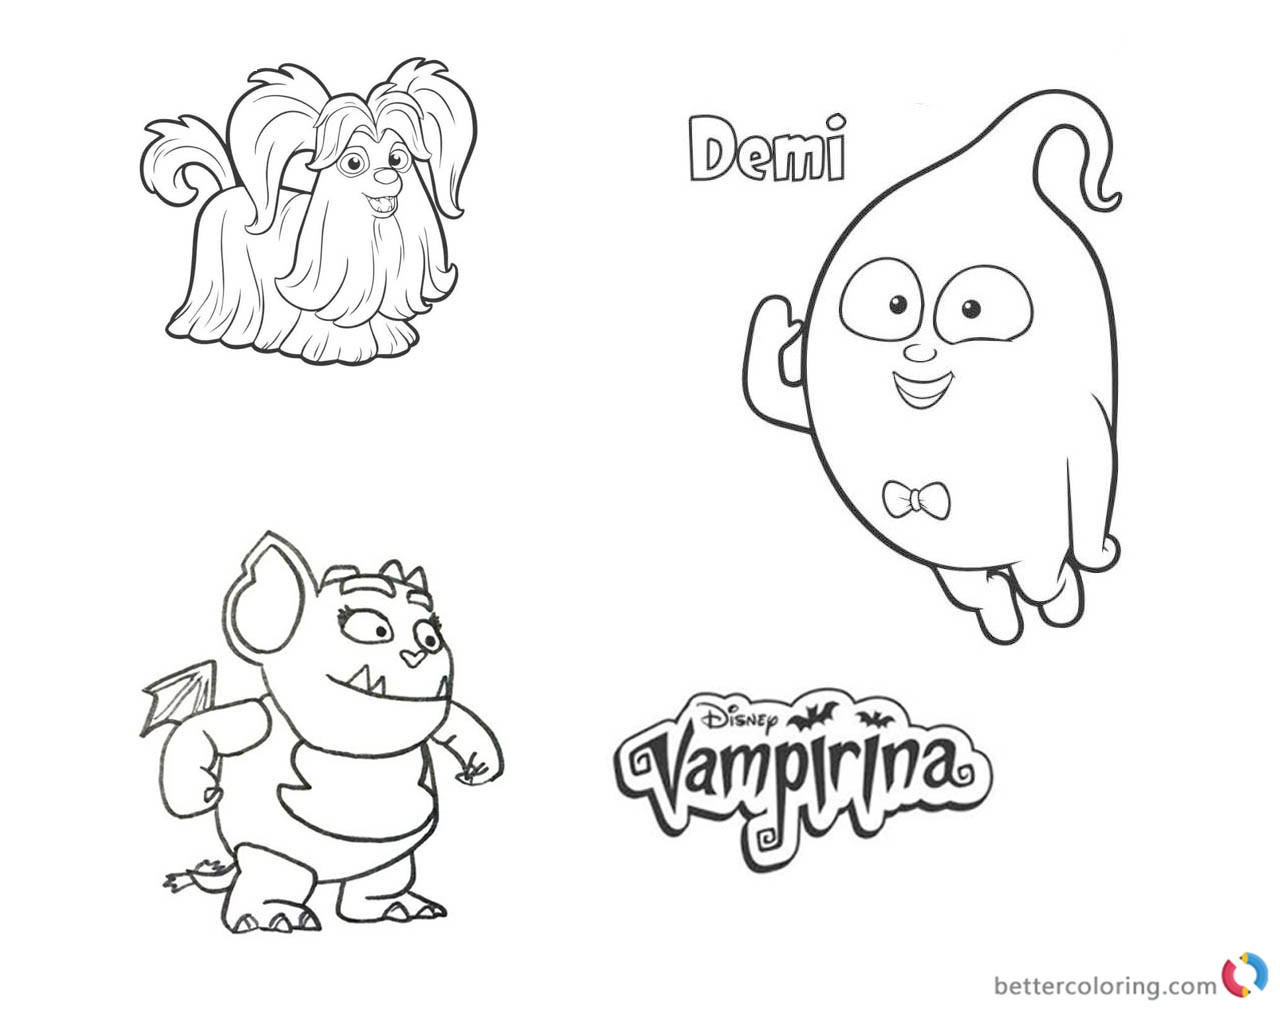 Vampirina coloring pages Wolfie Demi and Gregoria printable